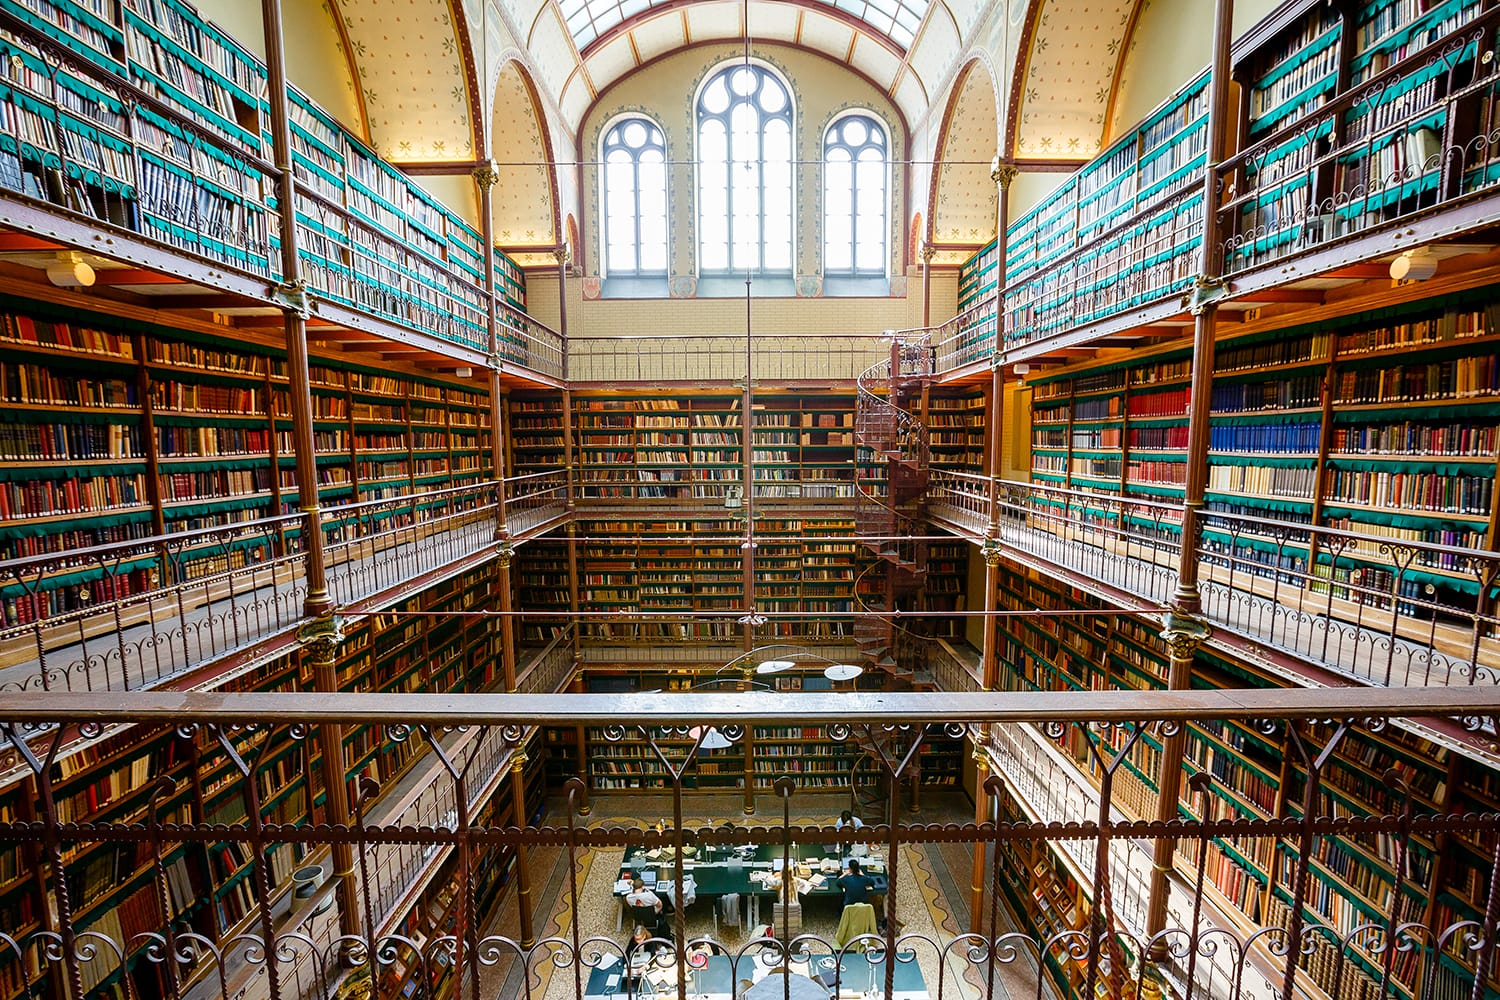 Rijksmuseum Research Library has the most extensive art history library in the Netherlands